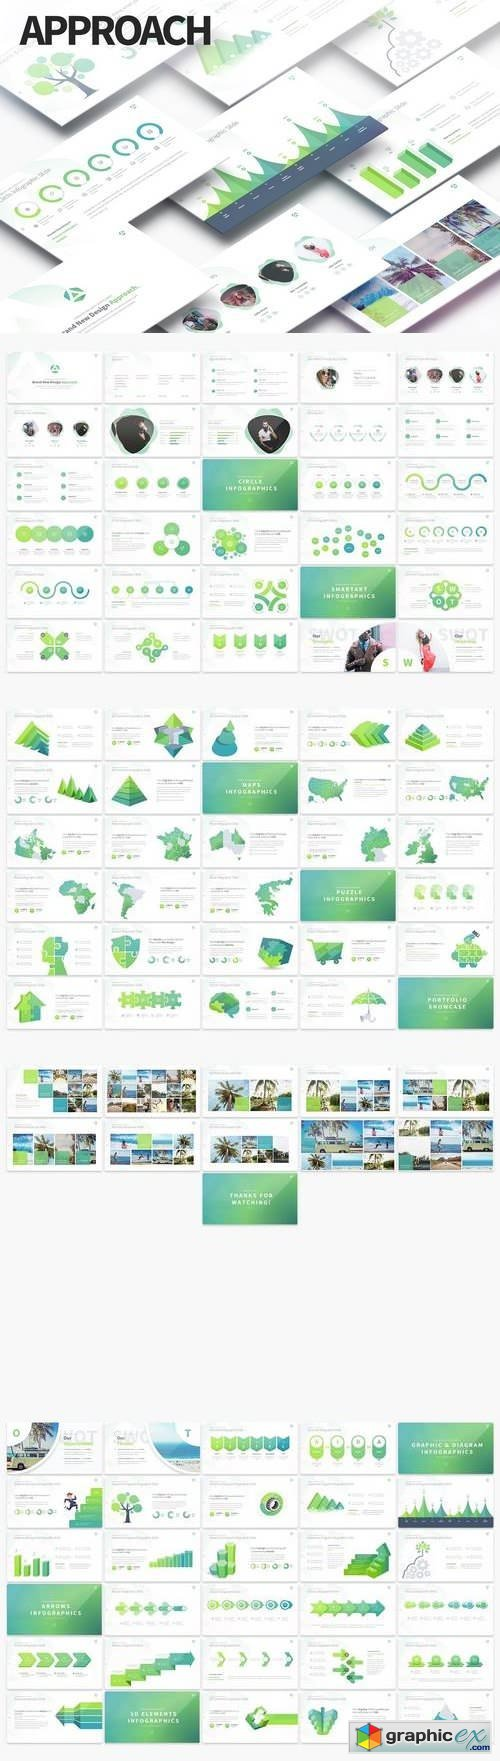 Approach - Multipurpose PowerPoint Presentation